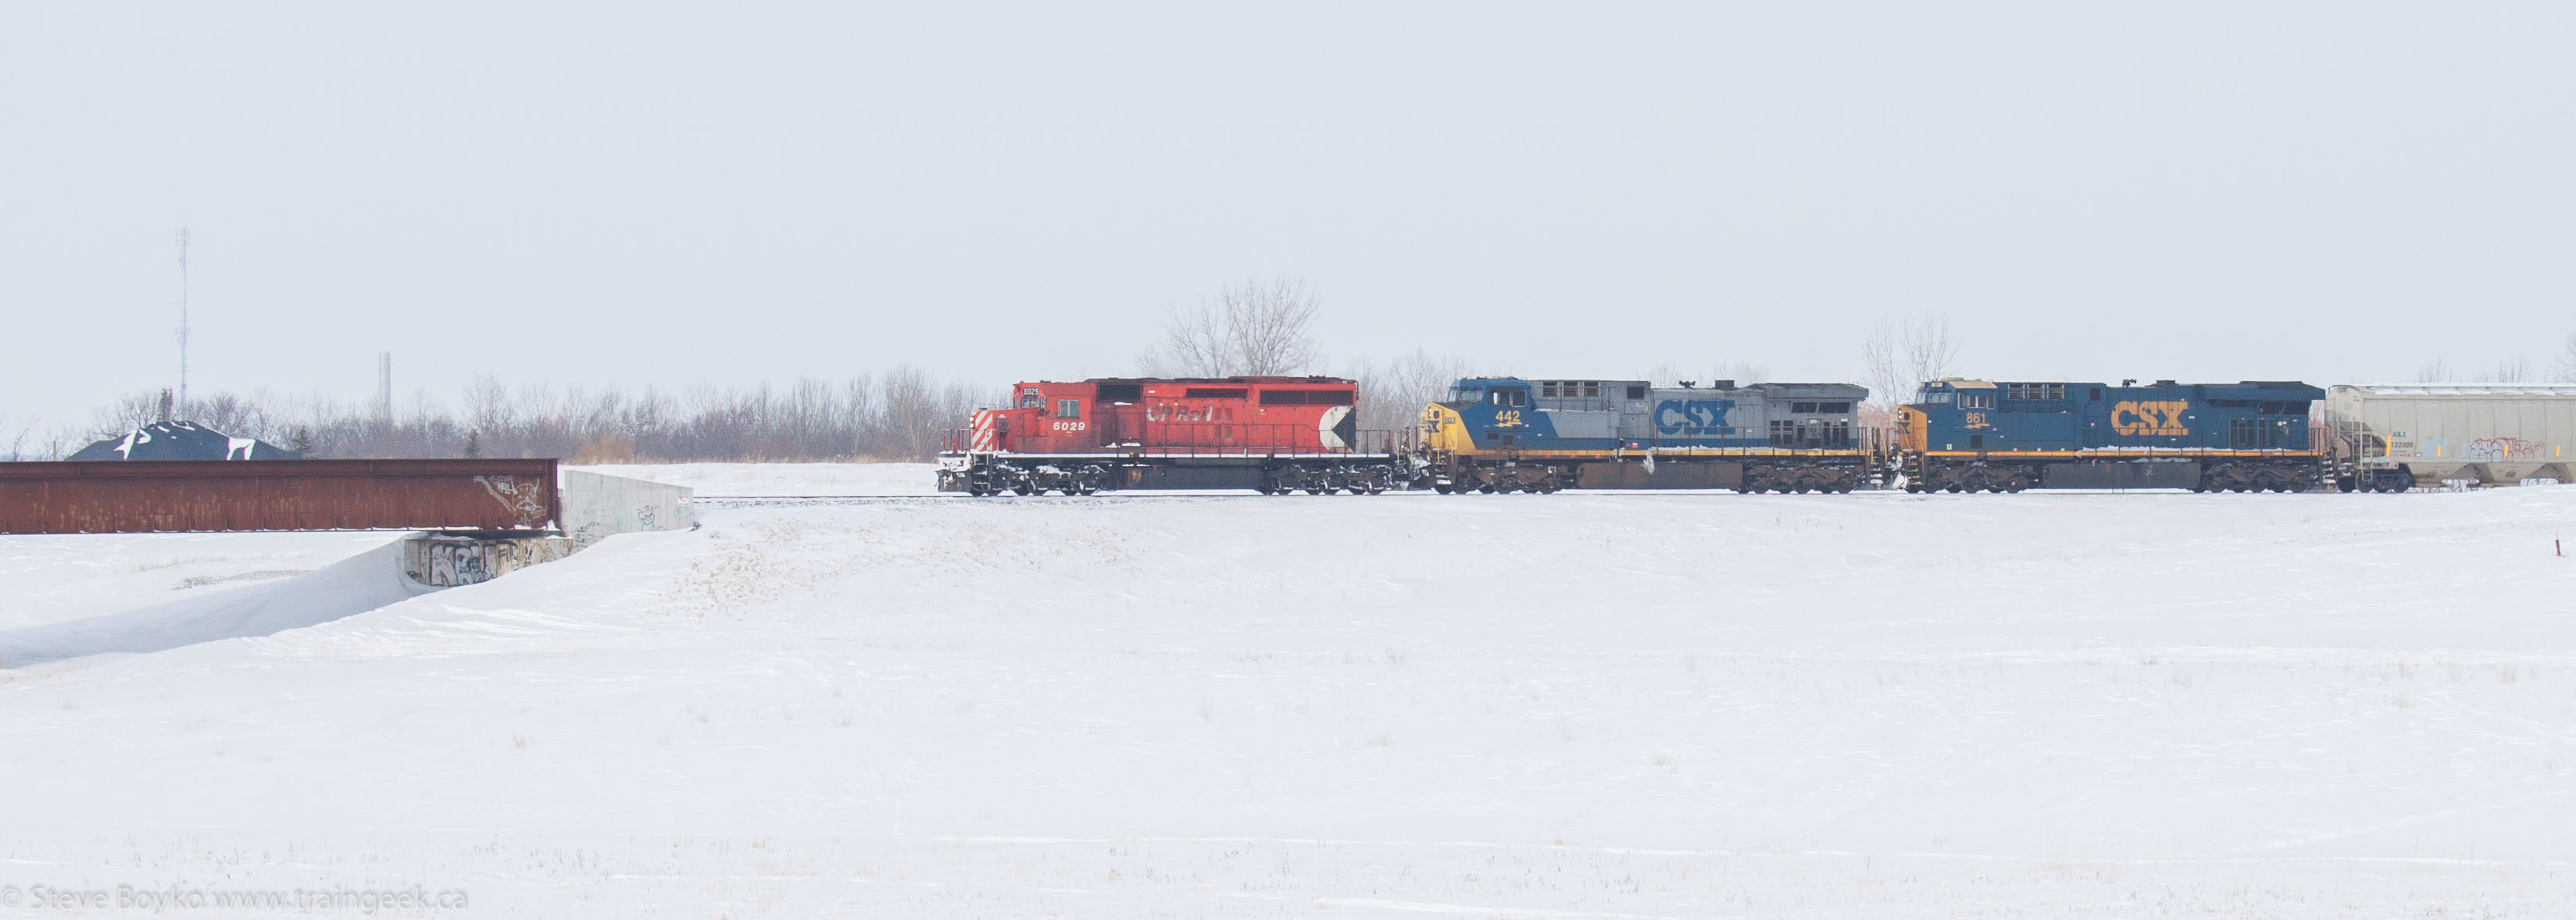 CP 6029 CSX 442 CSX 861 on the Floodway in Winnipeg 2014/03/09